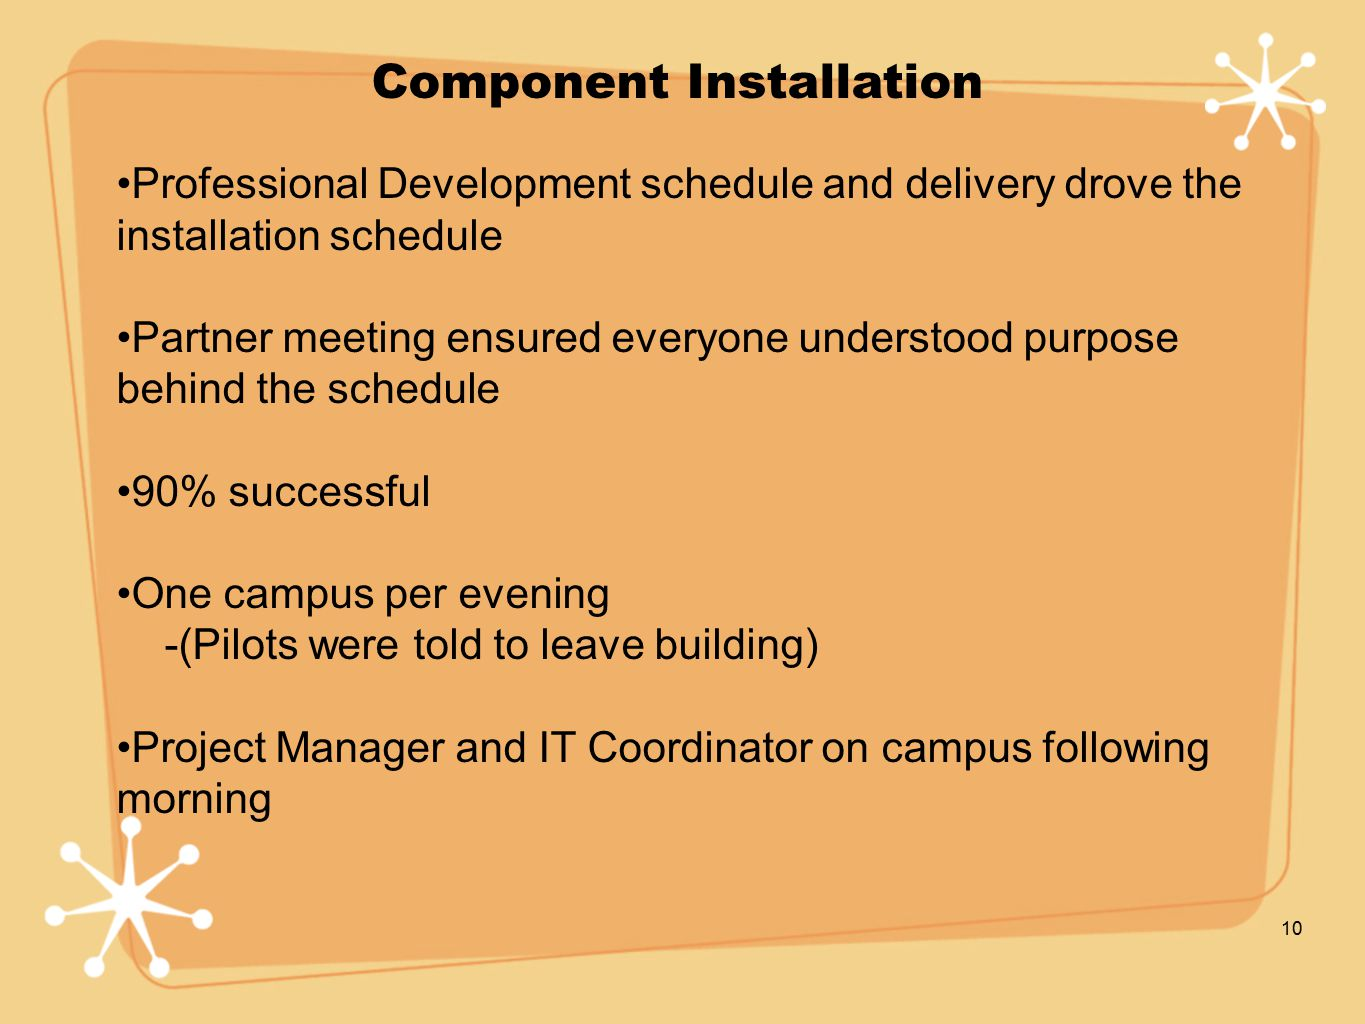 10 Component Installation Professional Development schedule and delivery drove the installation schedule Partner meeting ensured everyone understood purpose behind the schedule 90% successful One campus per evening -(Pilots were told to leave building) Project Manager and IT Coordinator on campus following morning